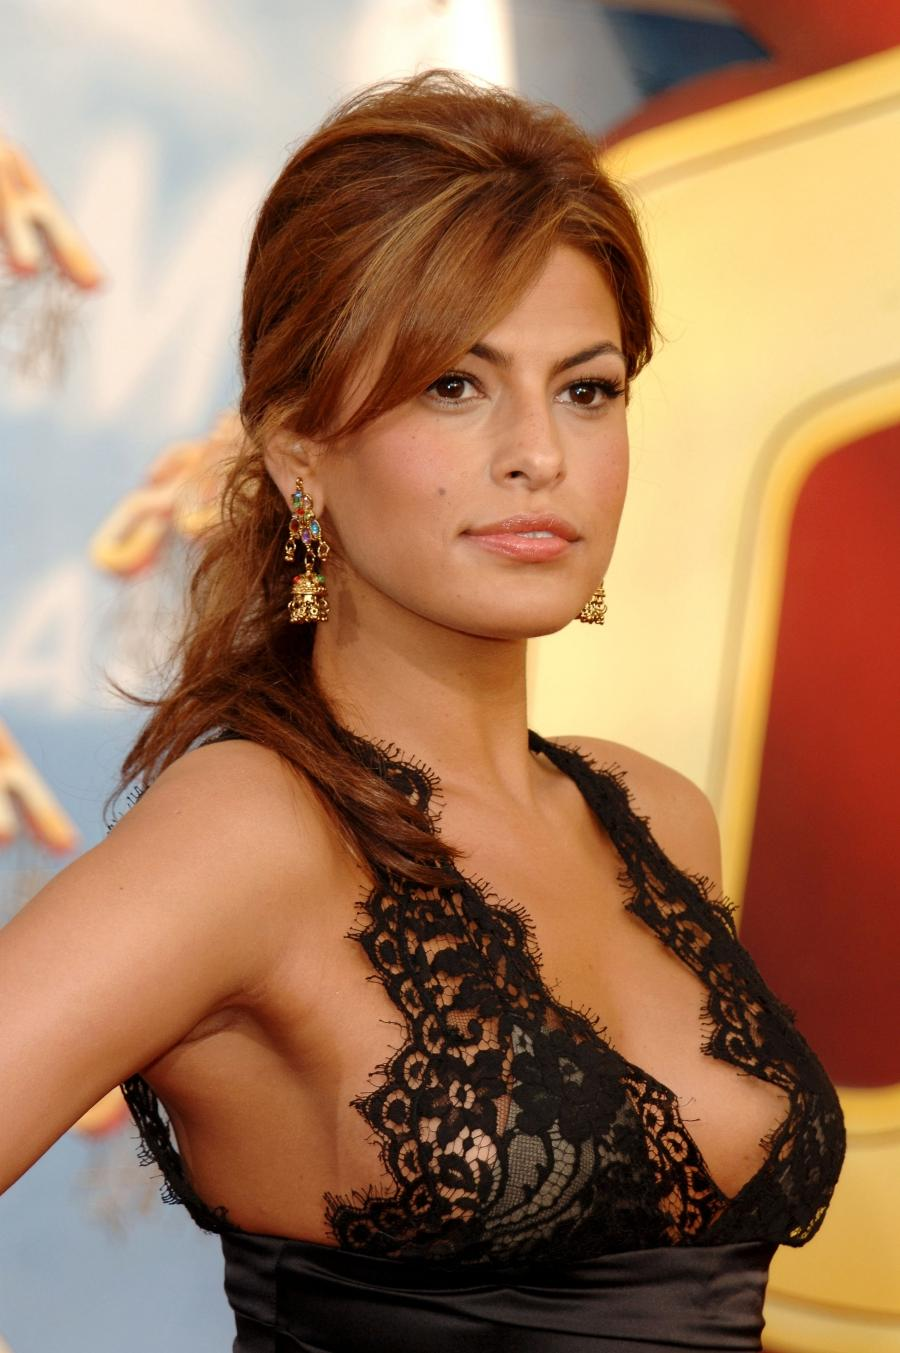 Eva Mendes Wardrobe Malfunction Photos